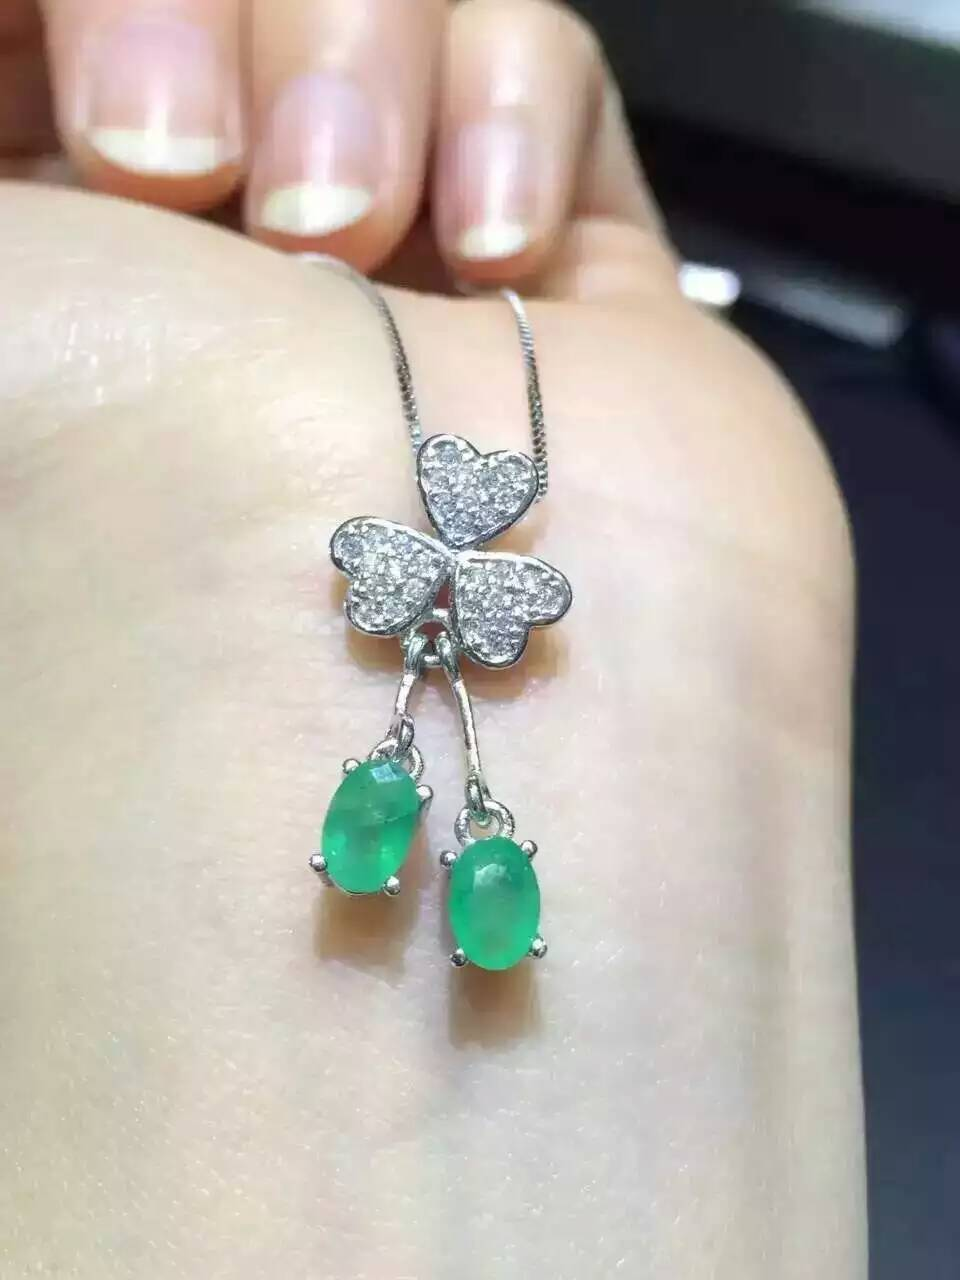 natural green emerald stone pendant S925 silver Natural gemstone Pendant Necklace trendy Elegant Clover women girl party jewelry natural green emerald pendant s925 silver natural gemstone pendant necklace trendy romantic double swan women girl gift jewelry